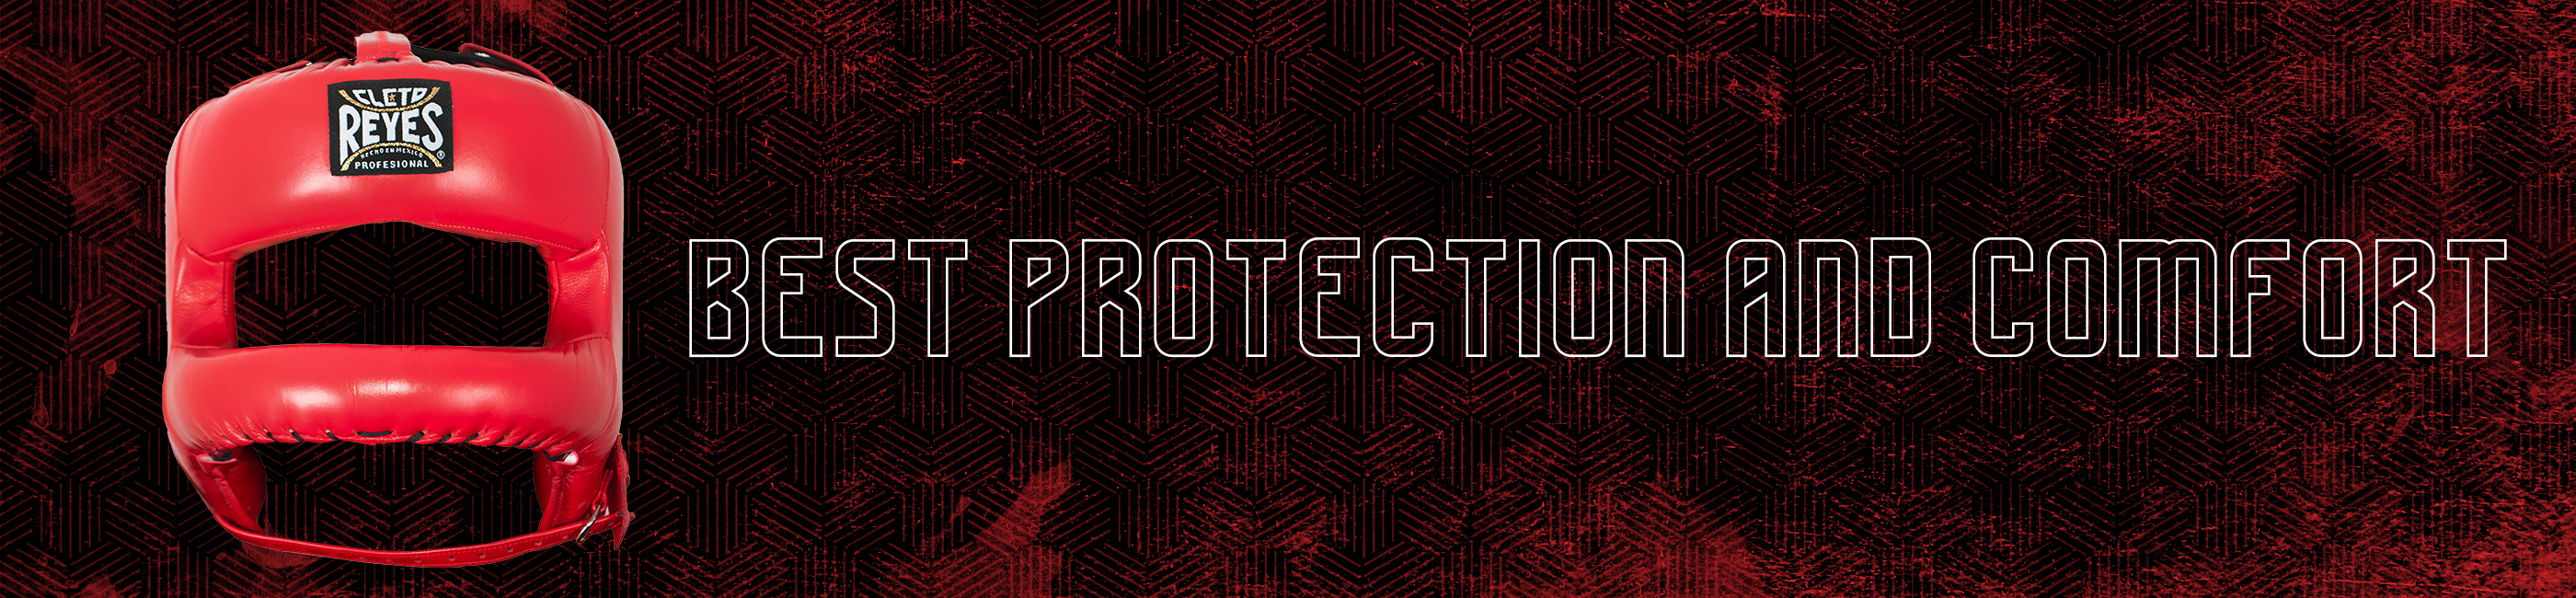 Best Protection and Comfort